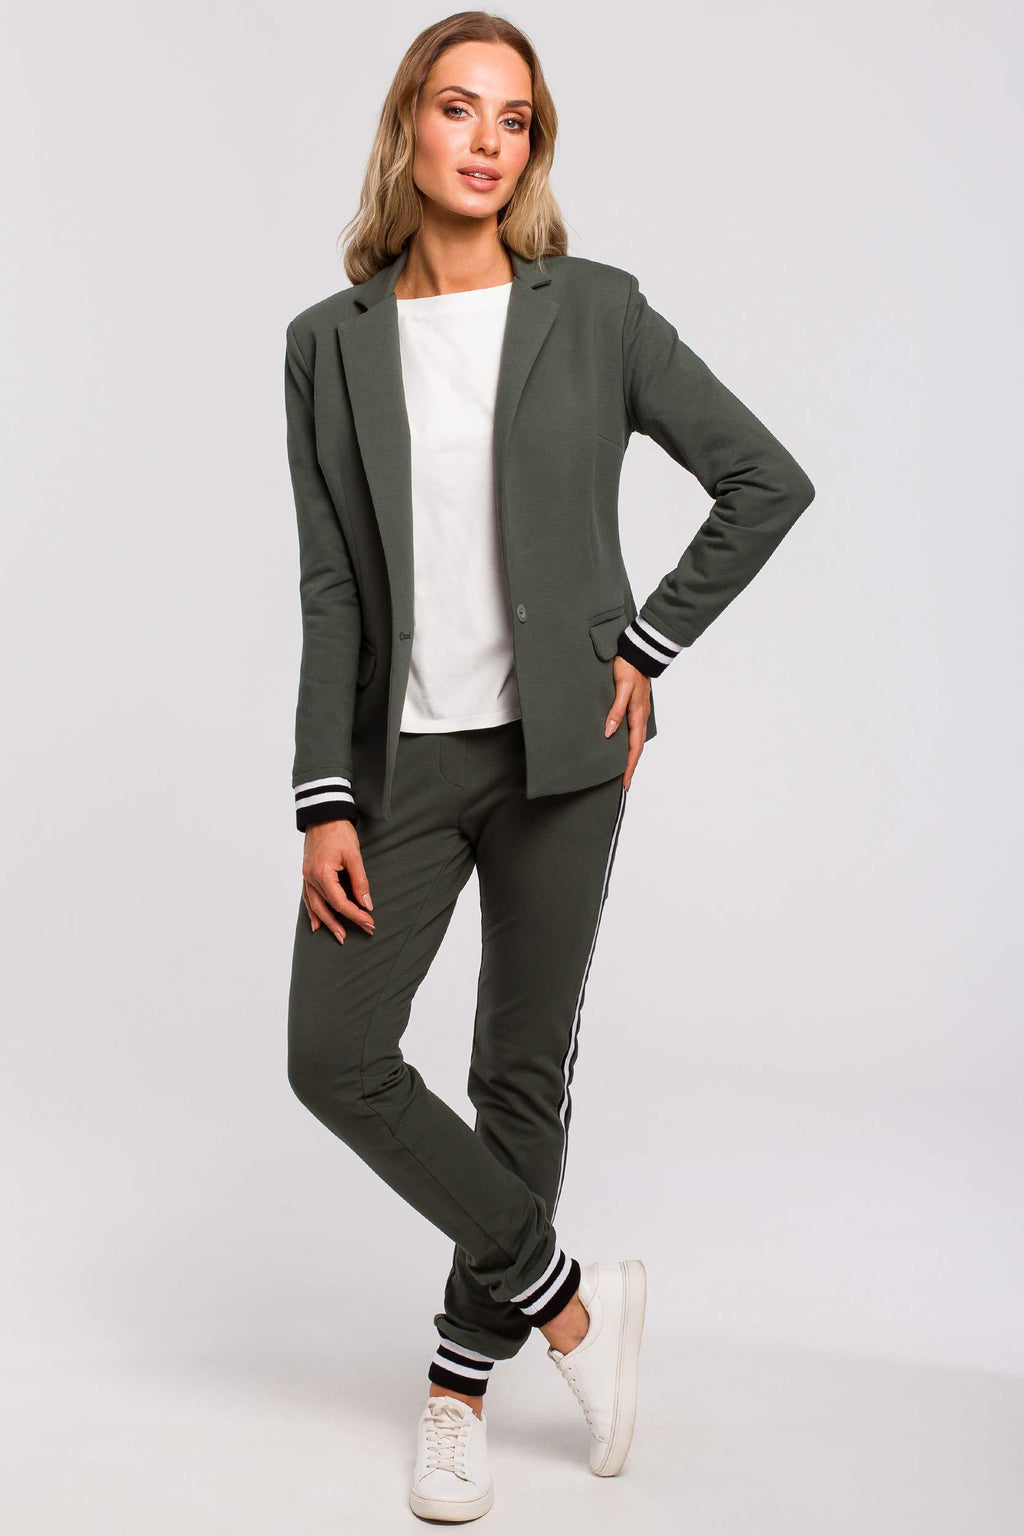 Cotton Khaki Blazer With Stripe Ribbed Cuffs - So Chic Boutique